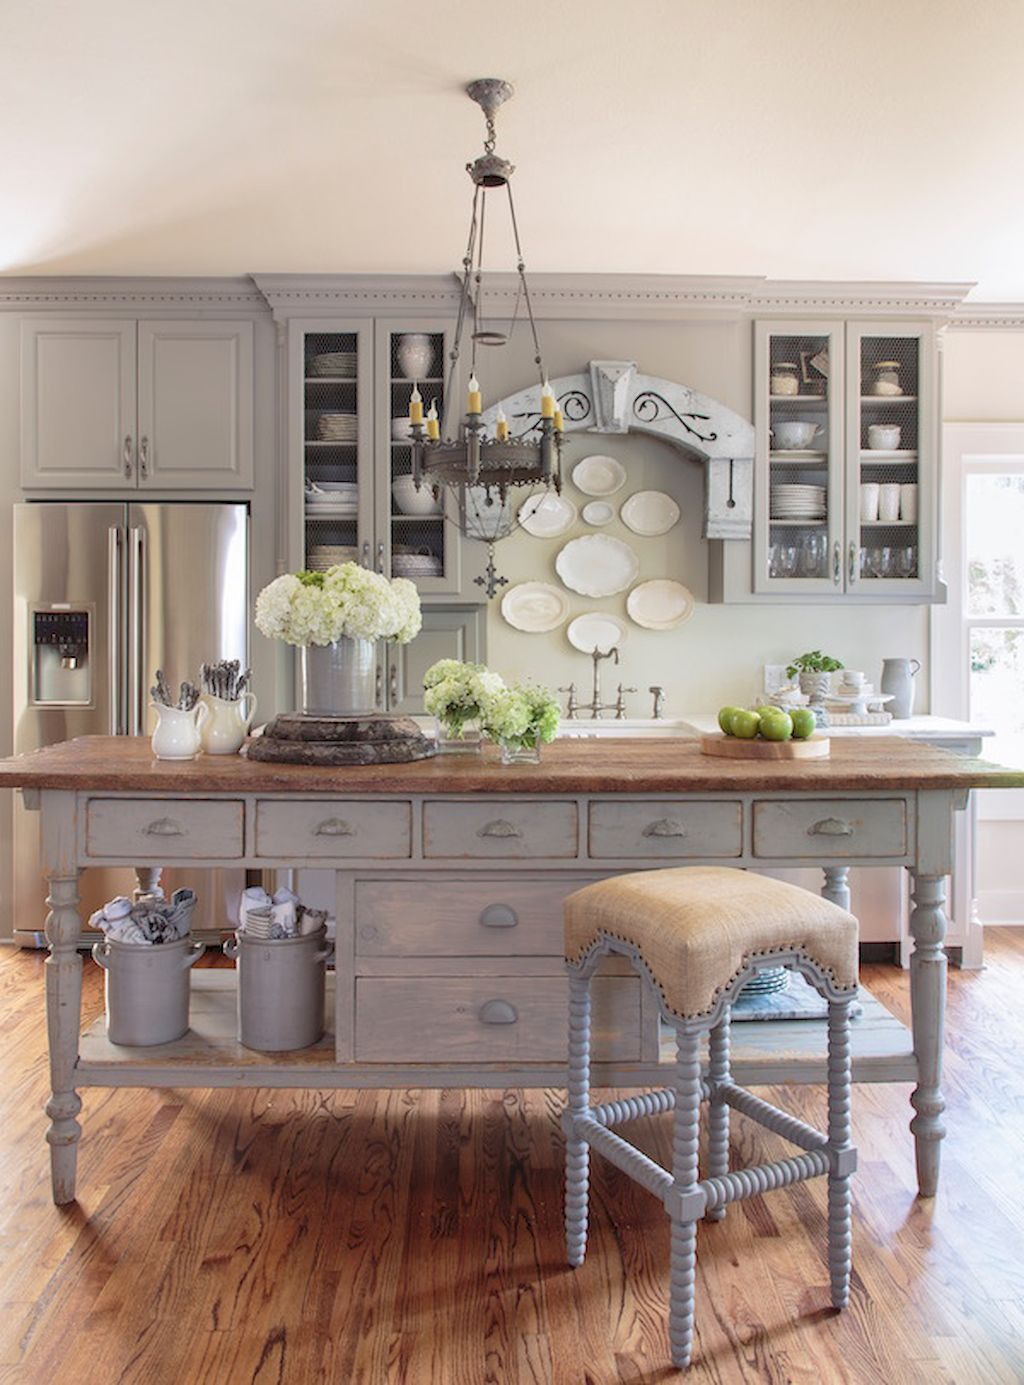 Stunning 40 French Country Style Kitchen Decorating Ideas  Https://crowdecor.com/40 French Country Style Kitchen Decorating Ideas/